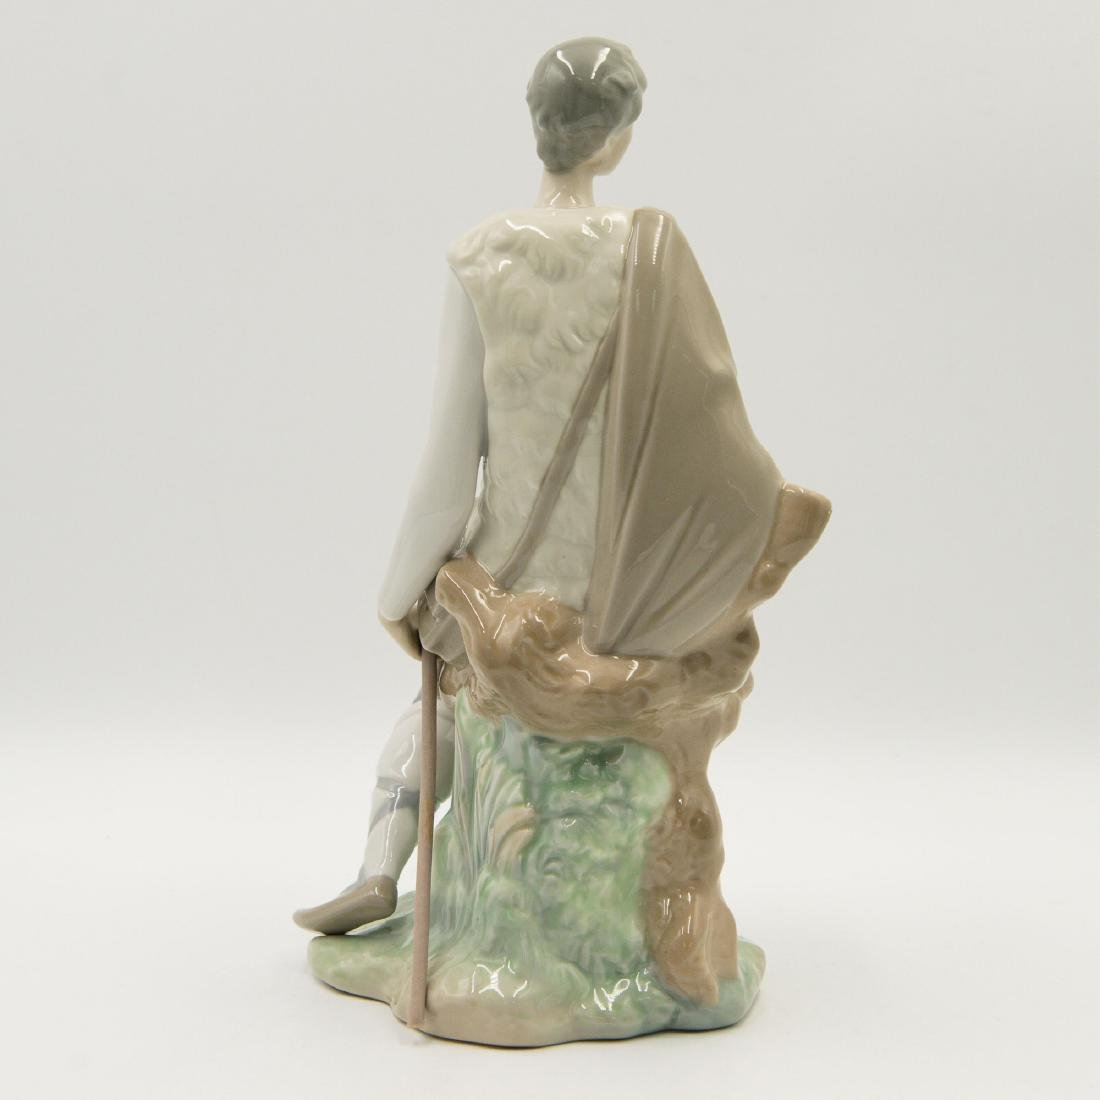 LLADRO NEW SHEPERD SCULPTURE 4577 - 2